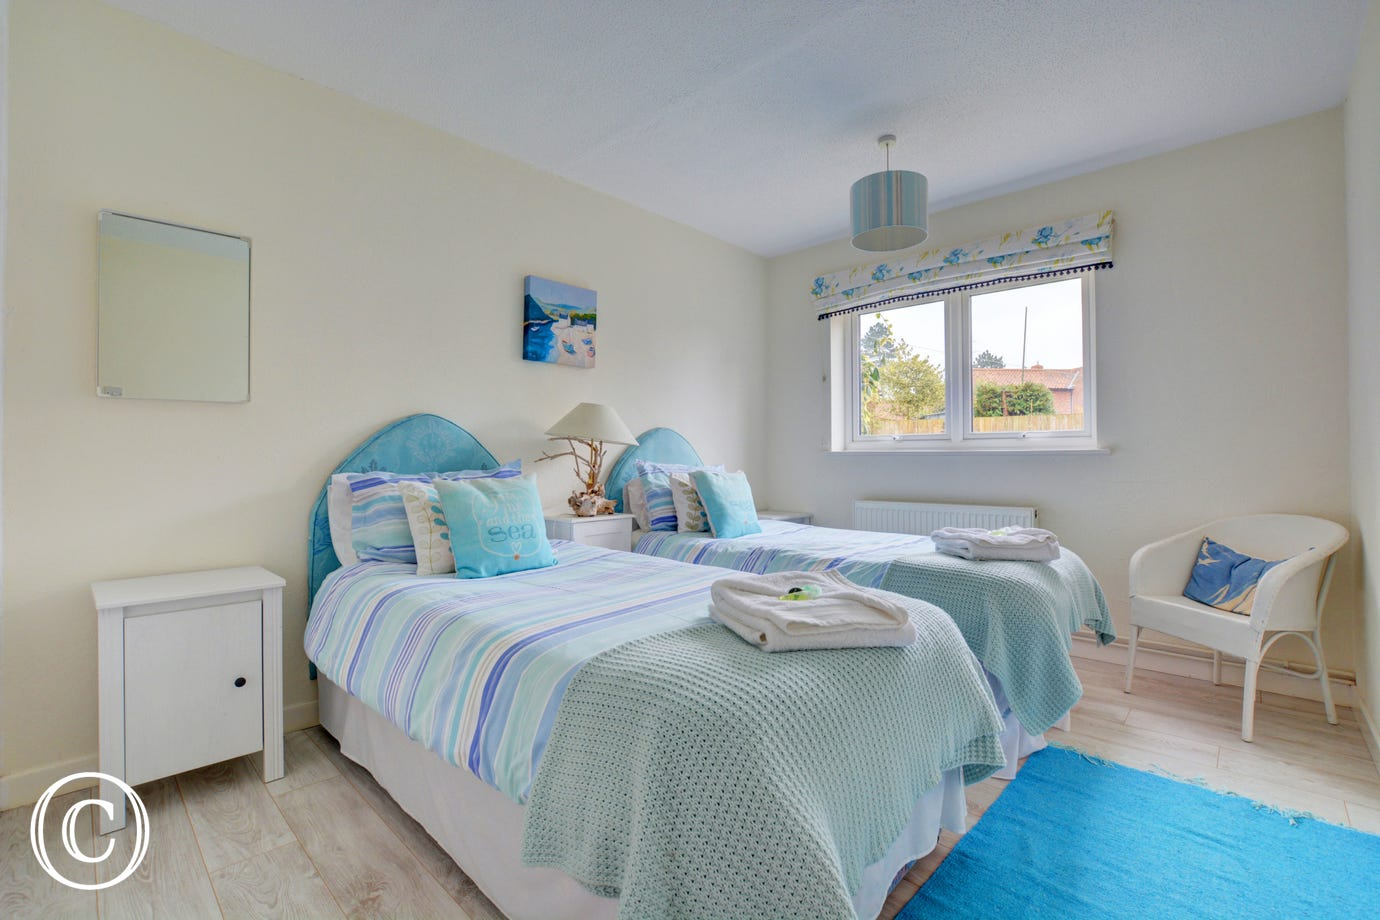 Bedroom one has twin beds making it ideal for adults or children alike.  The colour theme is blue.